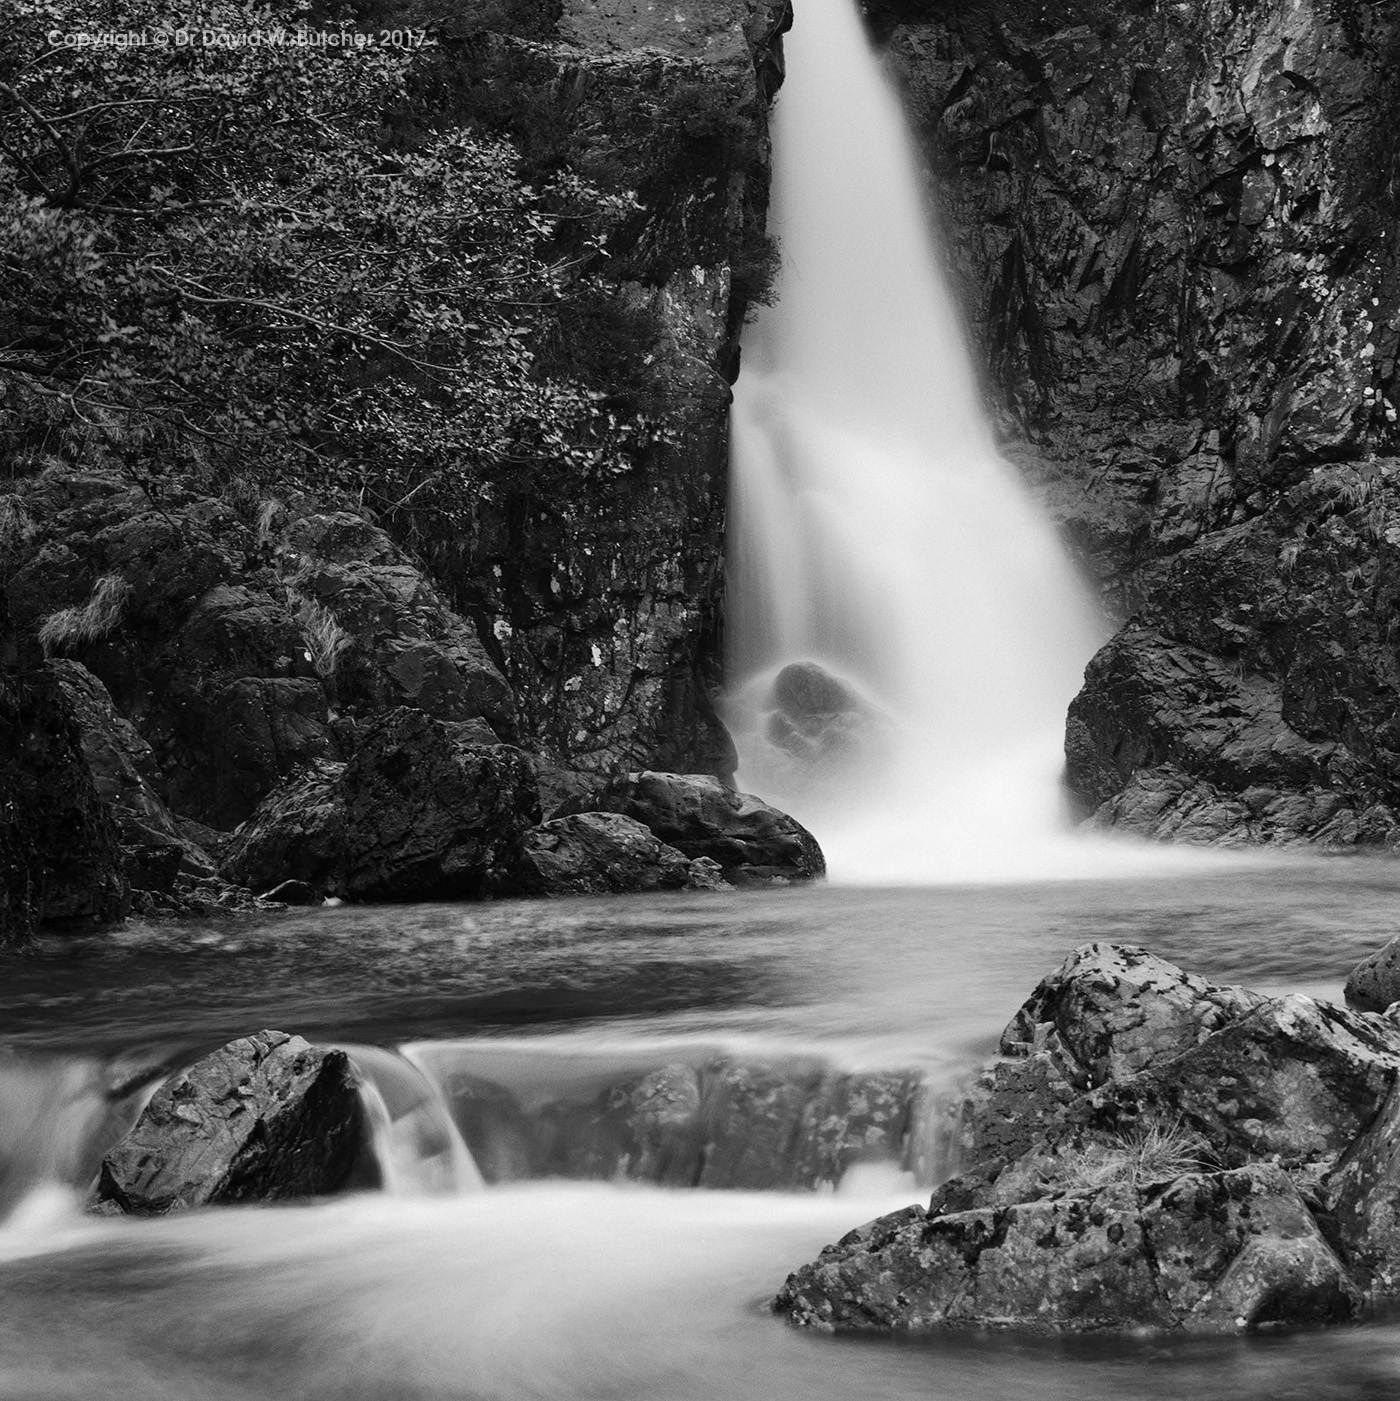 Eskdale Ling Cove Falls in Winter, Lake District